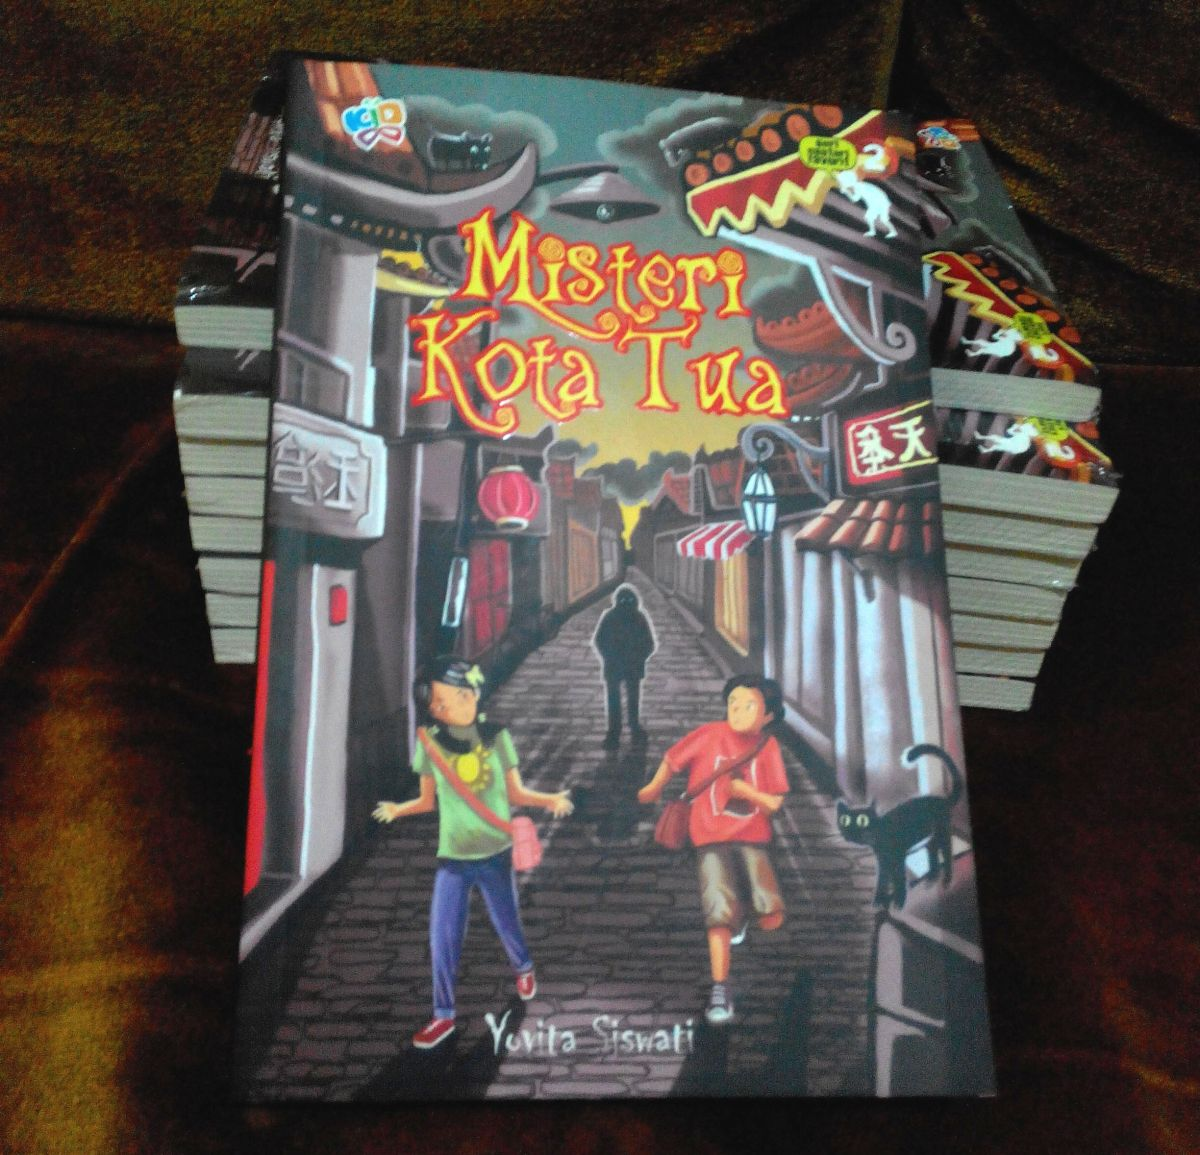 Resensi Novel Misteri Kota Tua di blog mewrimembaca.blogspot.com